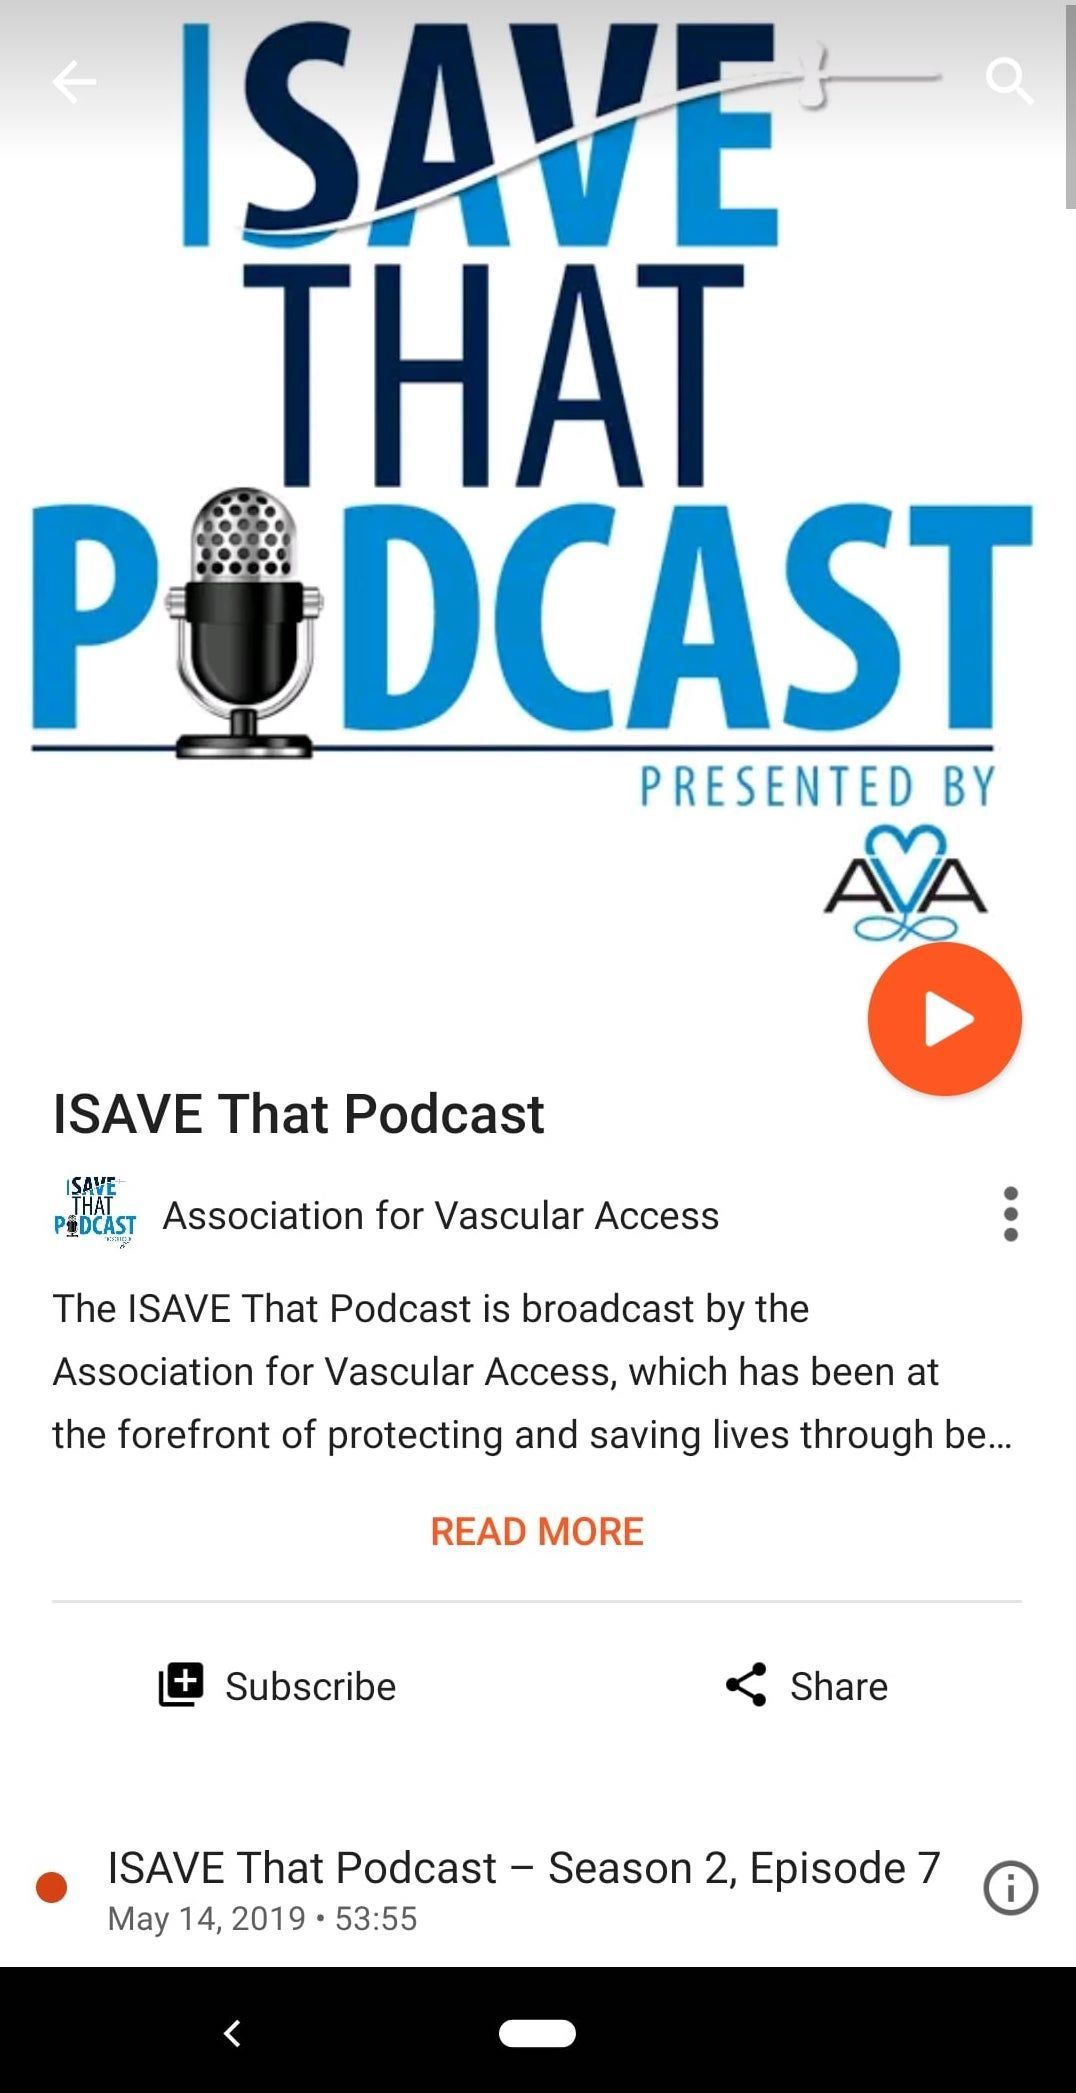 The ISAVE That Podcast is now available on Google Music